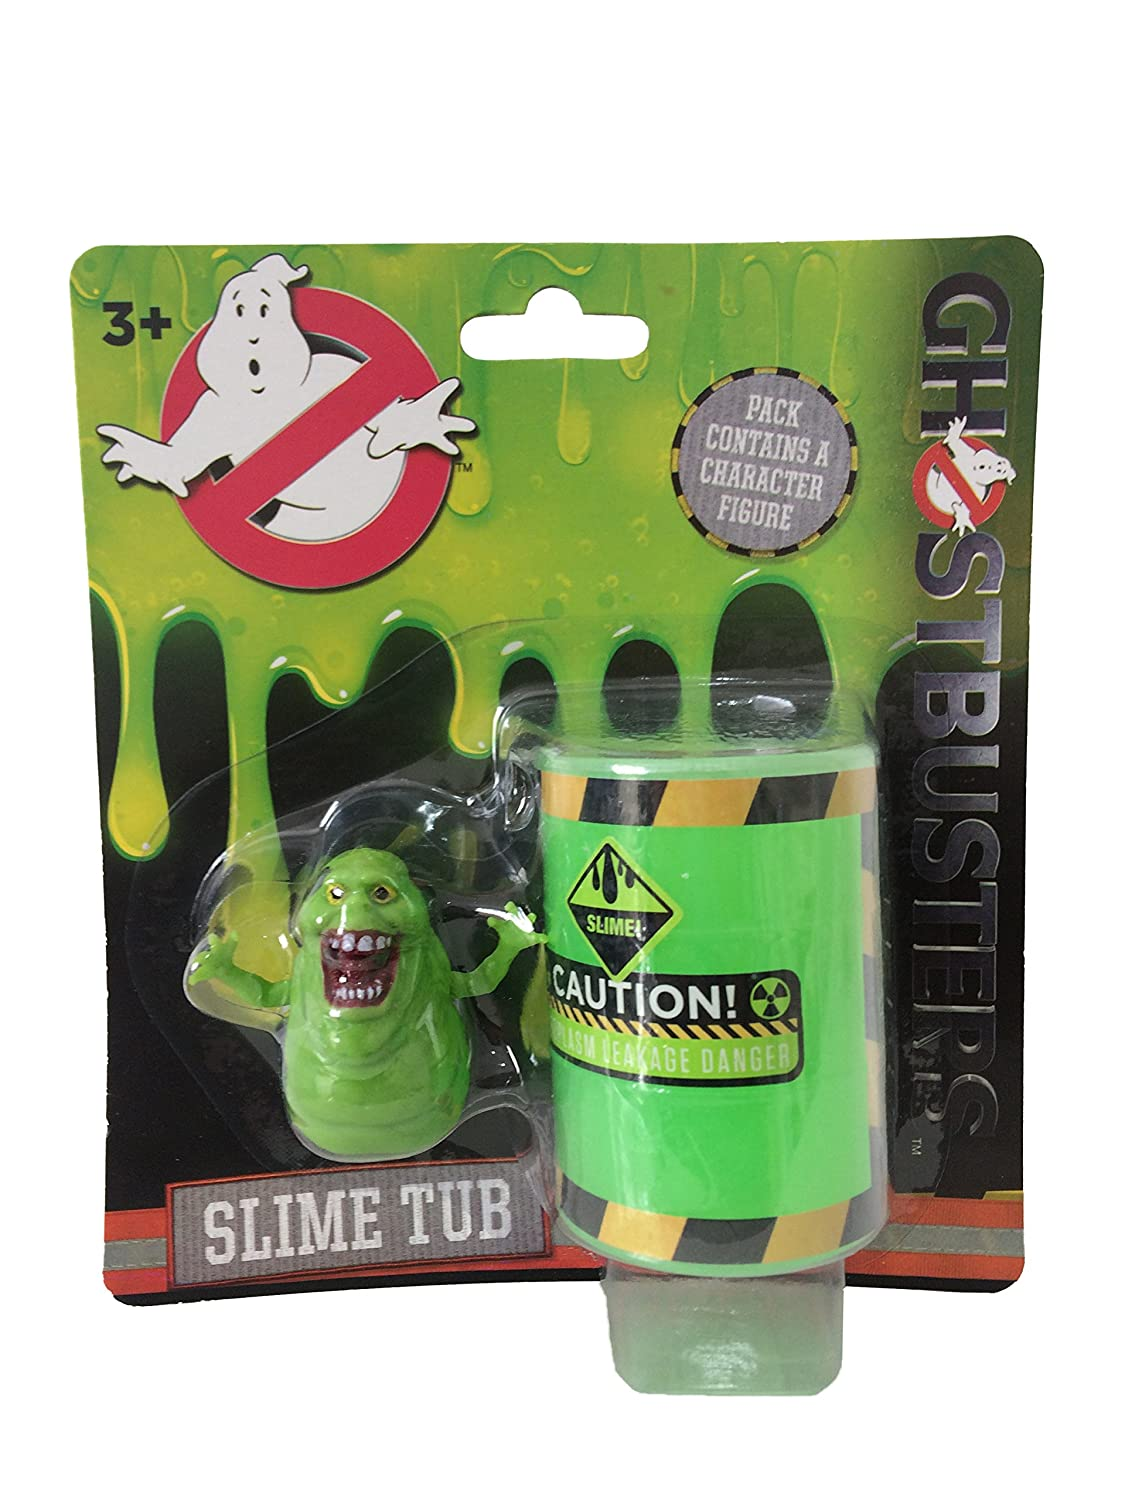 1x Ghostbusters Slime Tub With Toy (Stay Puft, Slimer or Logo) HGL SV12807